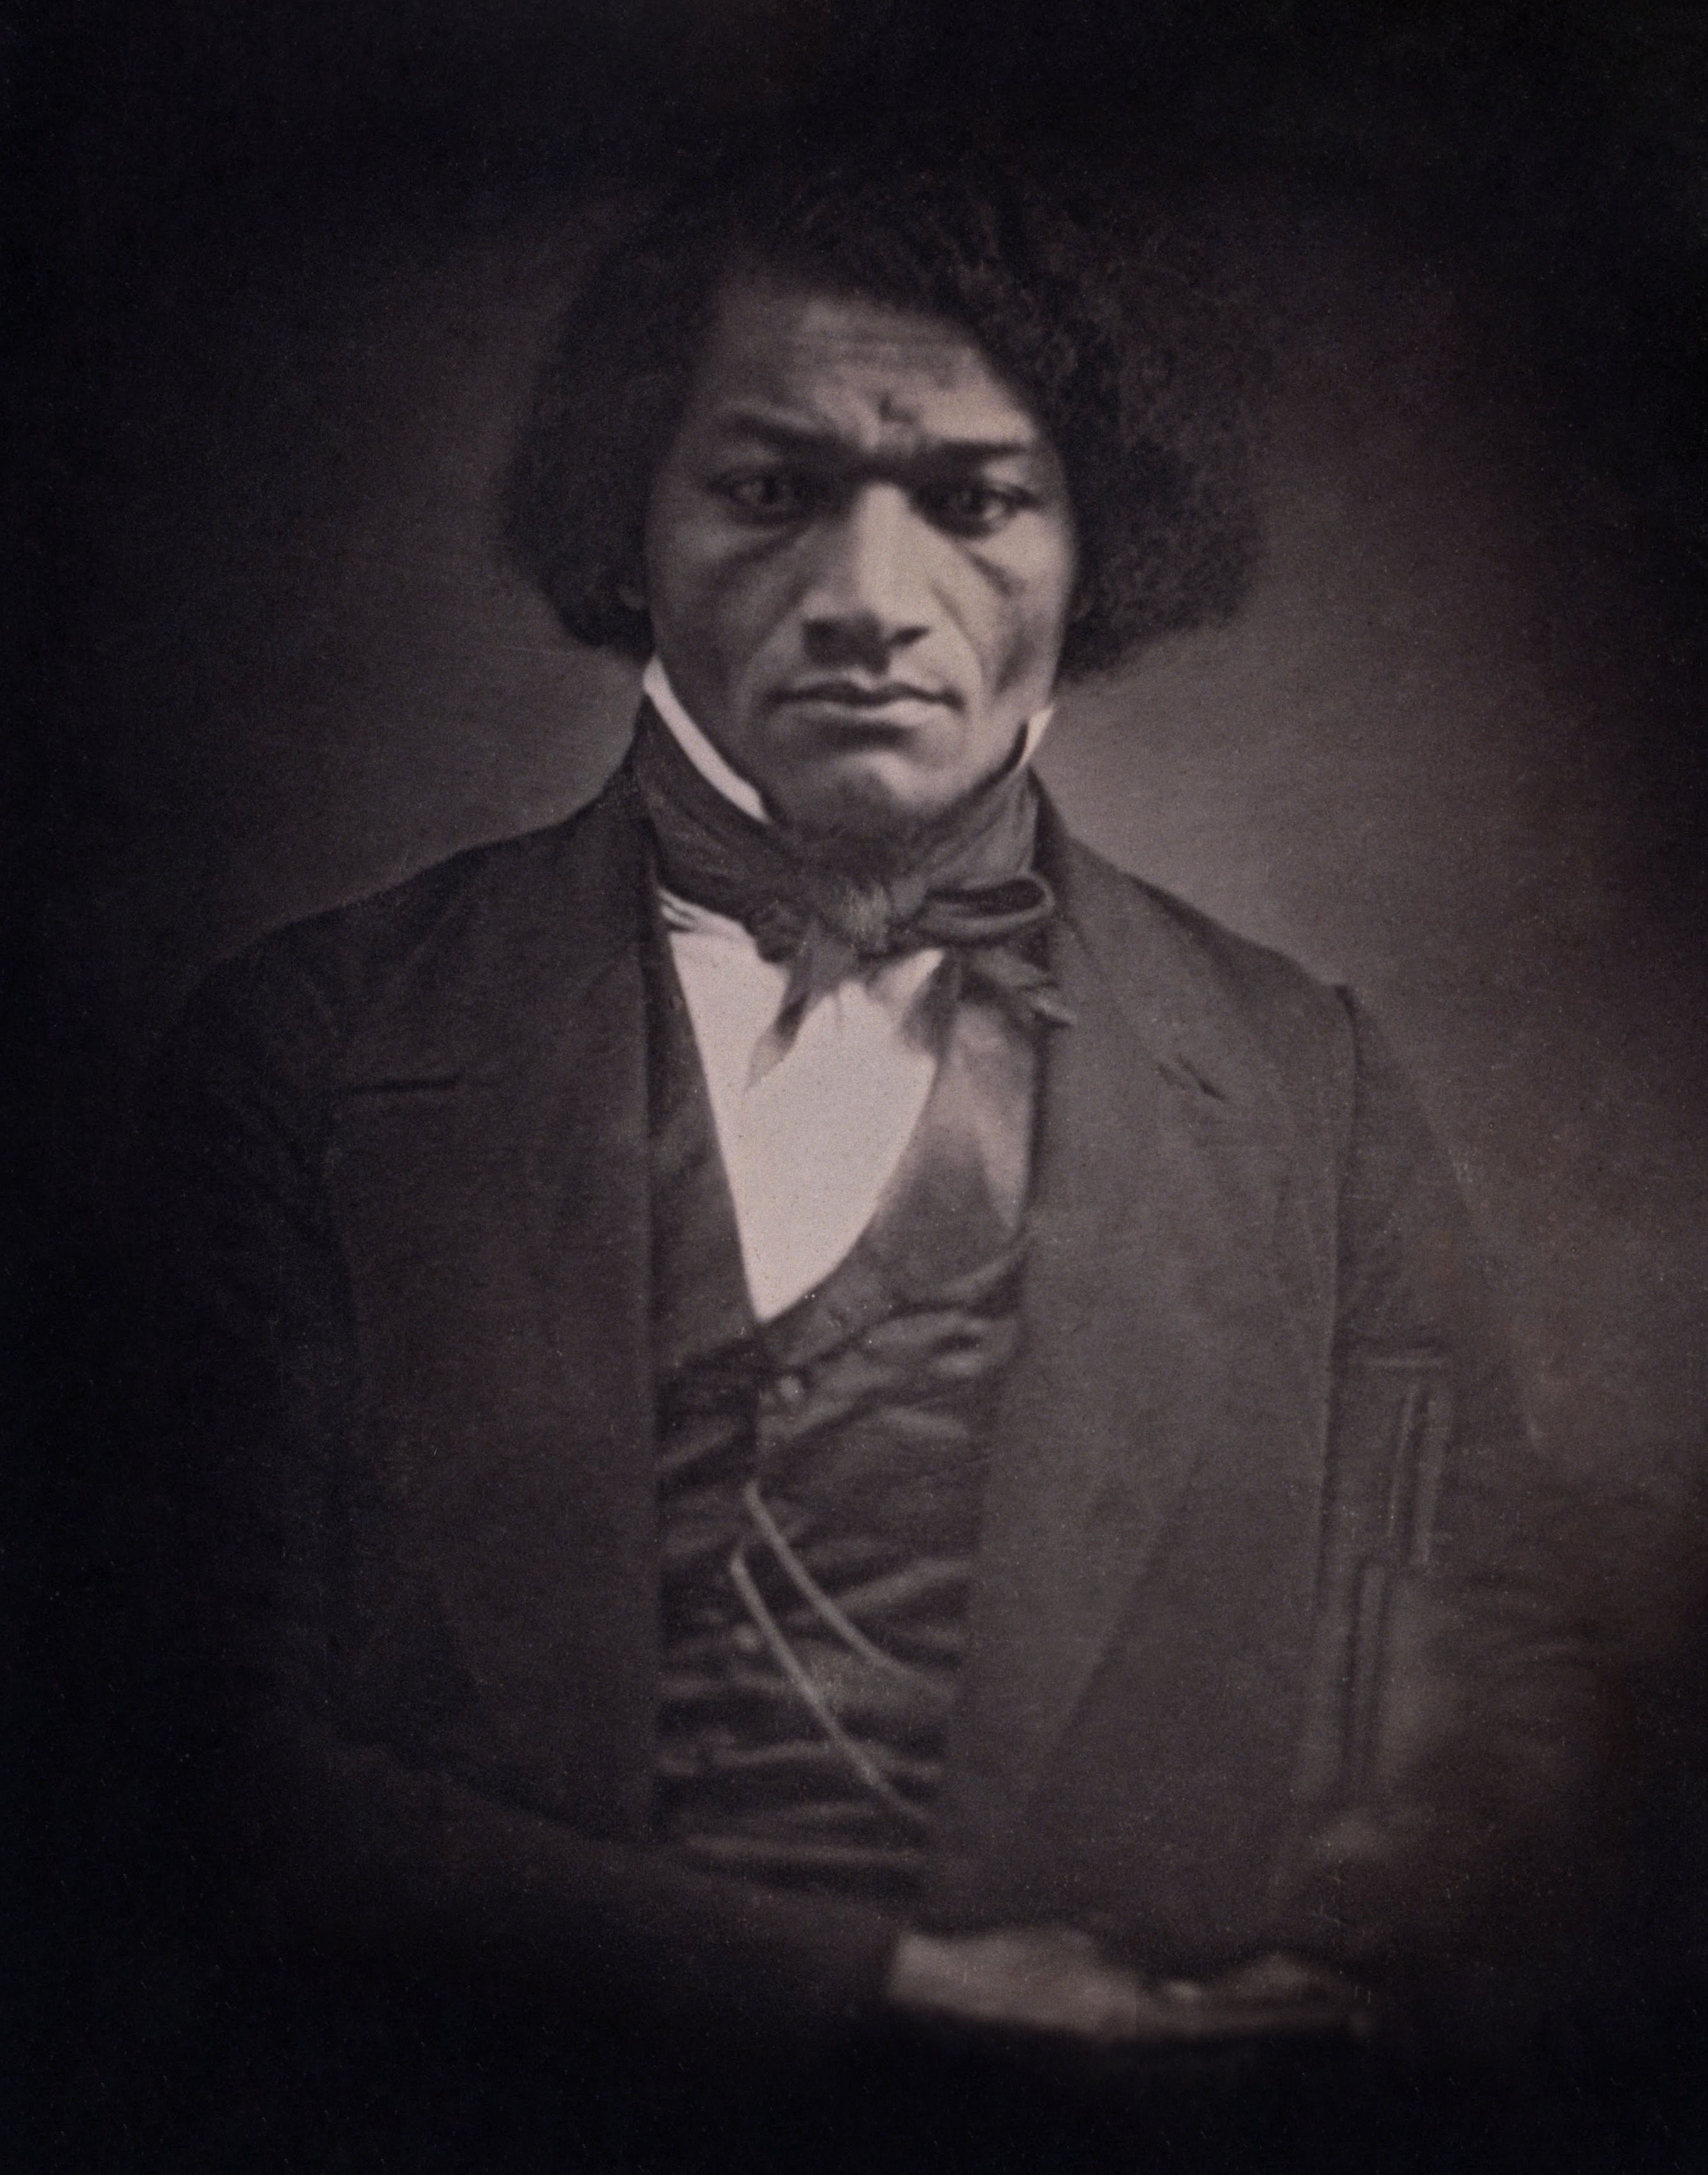 frederic douglass Frederick douglass made himself the most compelling witness to the evils of slavery and prejudice he suffered as his master broke.